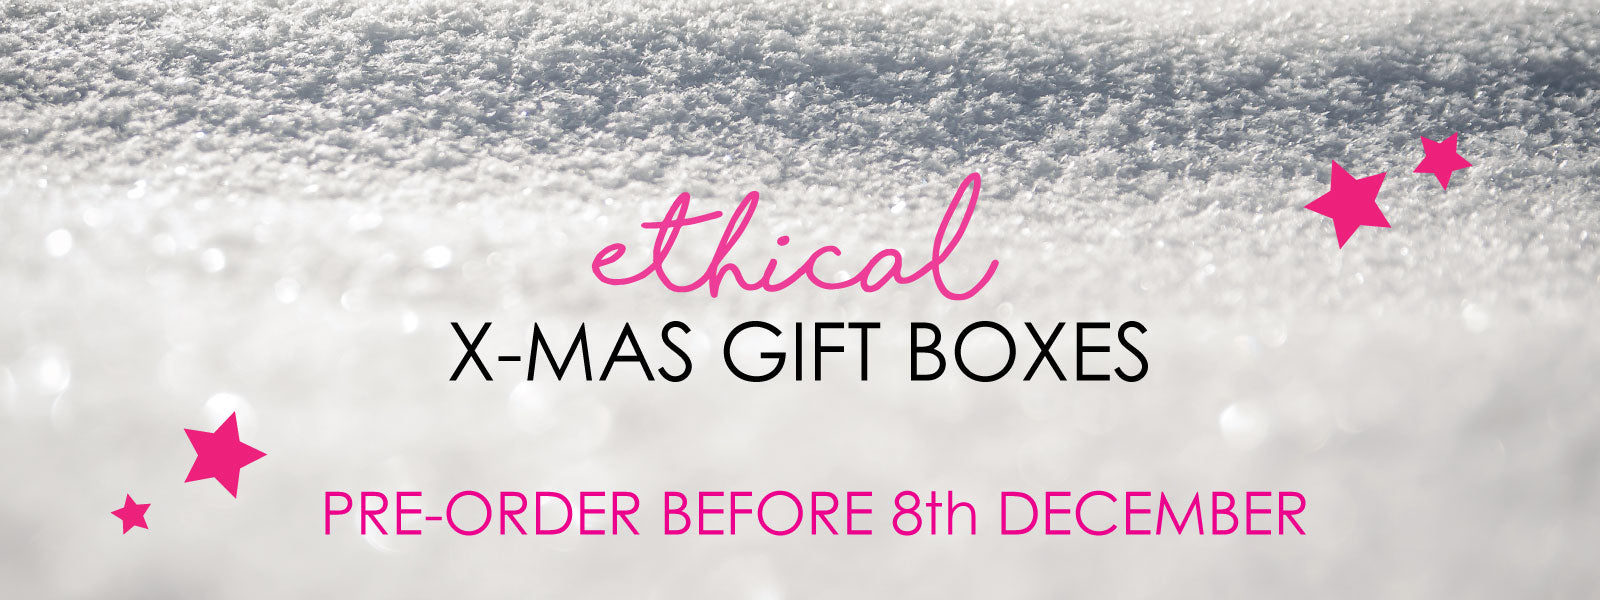 Christmas Gift Boxes Ethical Natural Organic